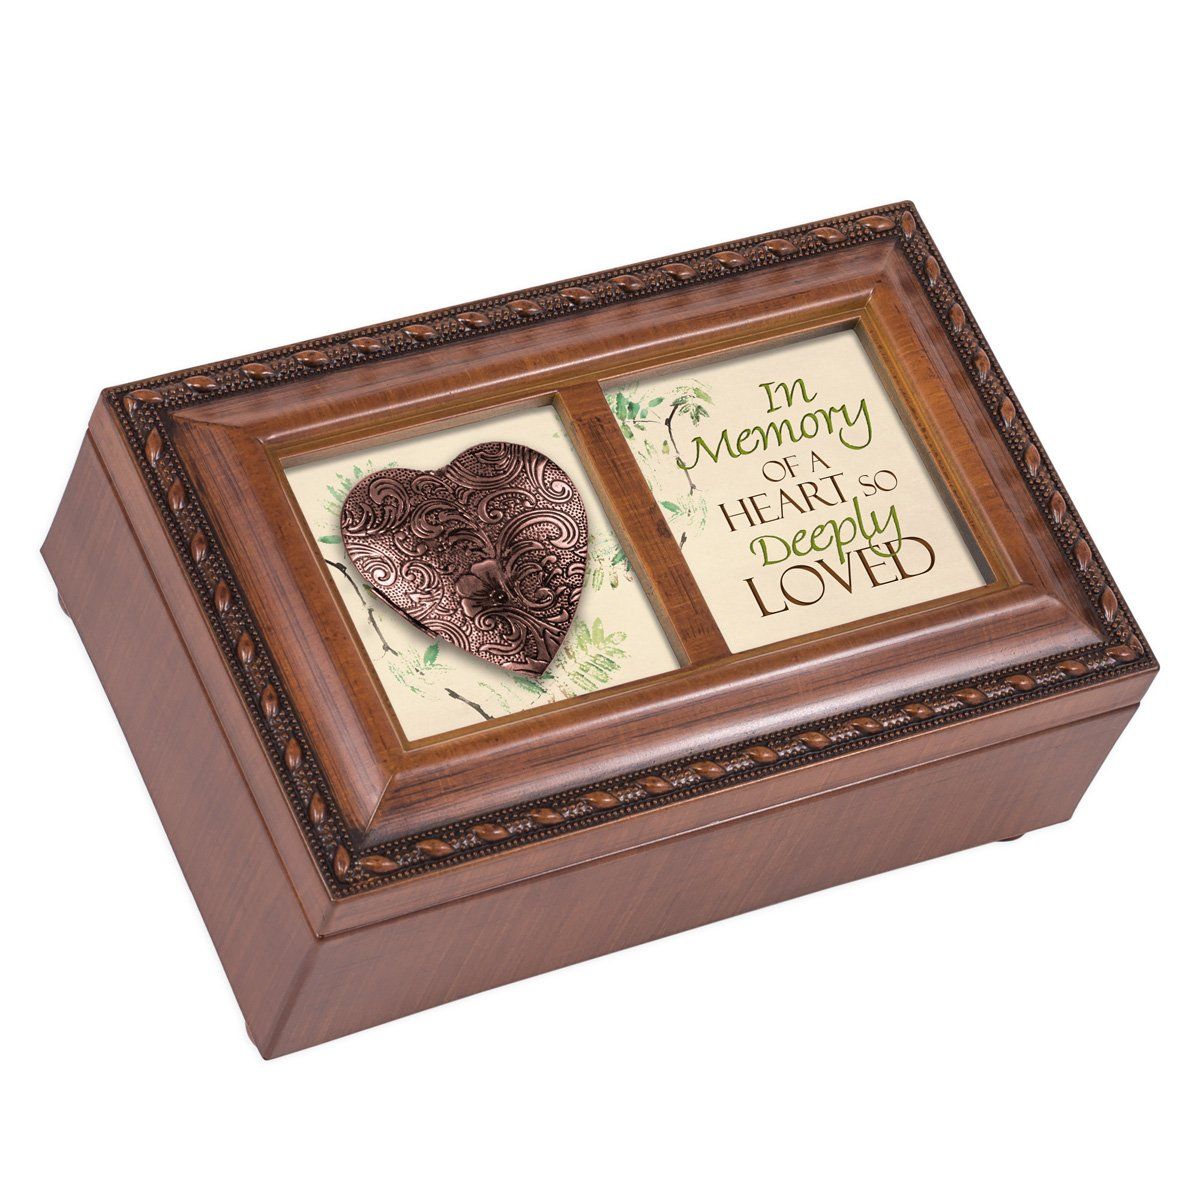 Cottage Garden in Memory of a Heart So Deeply Loved Woodgrain Rope Trim Jewelry Music Box Plays Amazing Grace